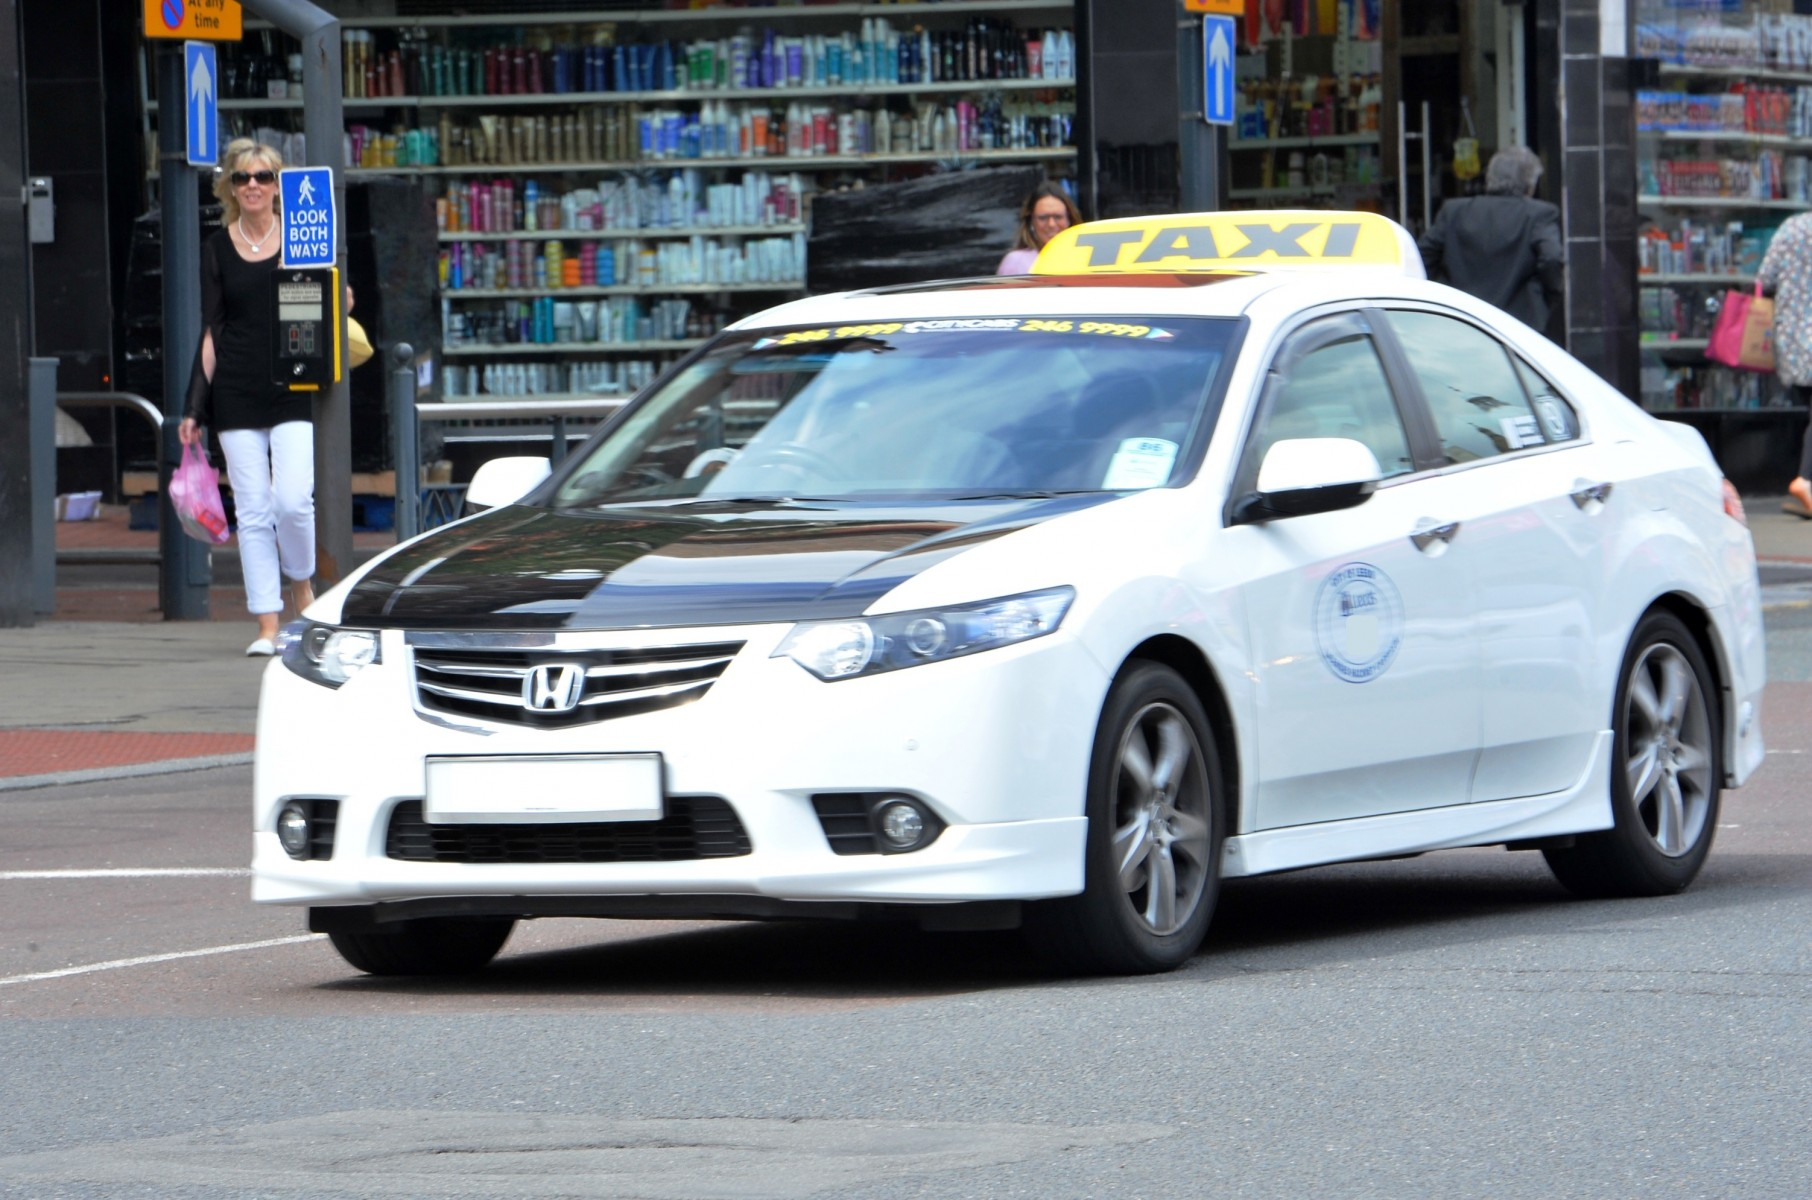 safeguarding  taxi  private hire licensing  top